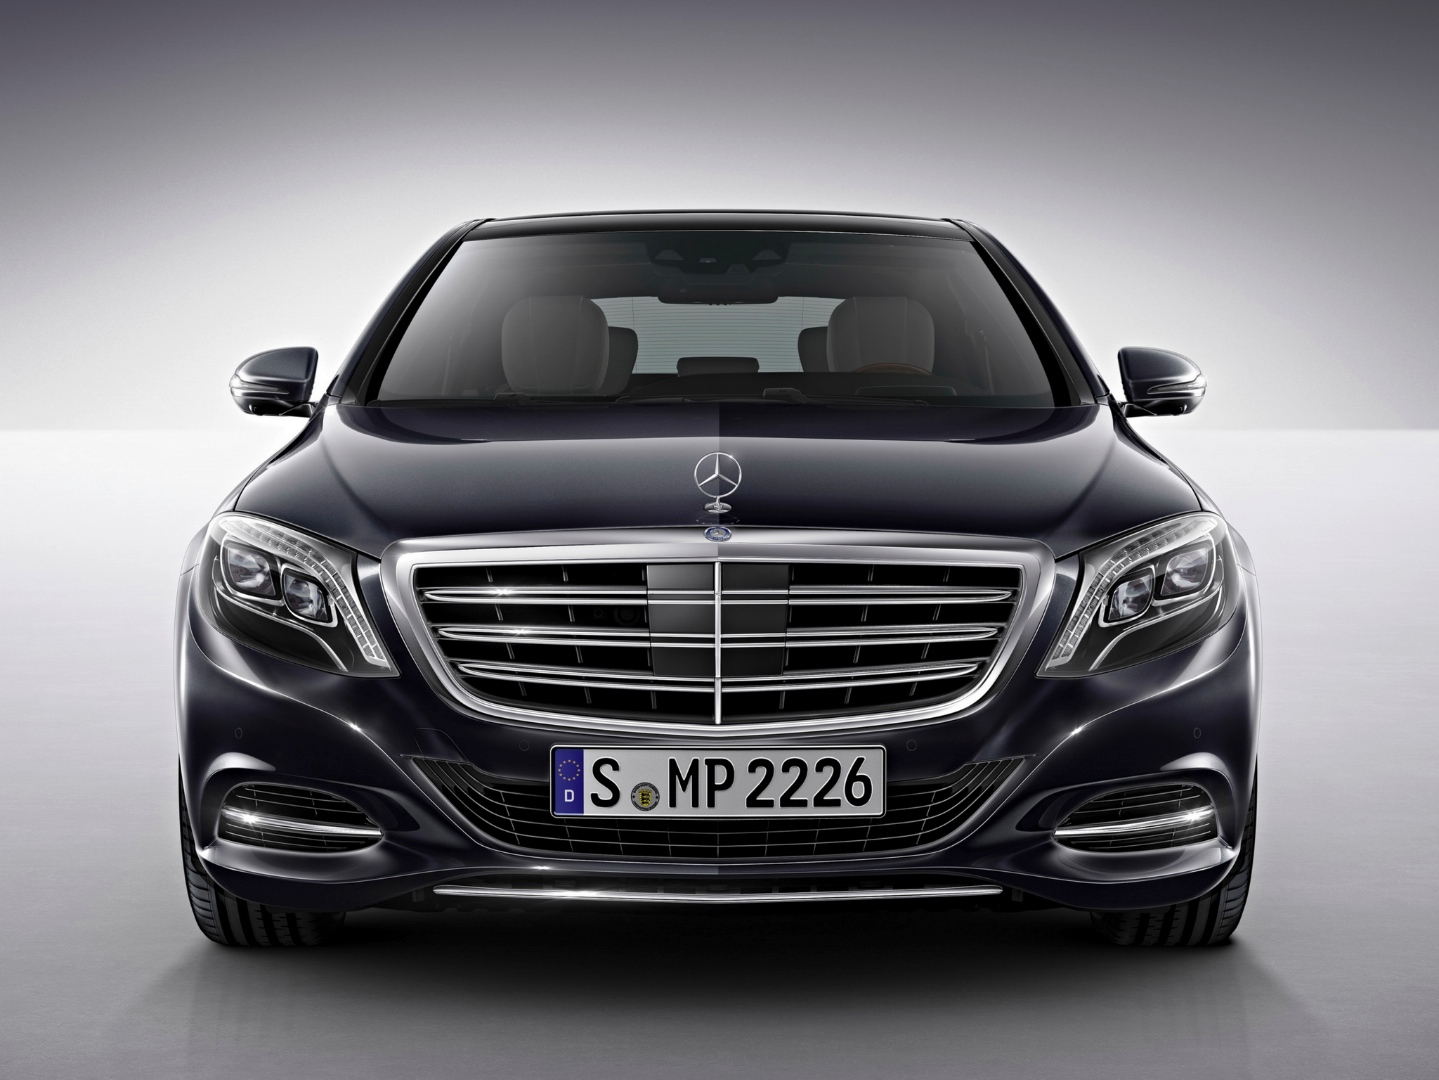 Mercedes benz usa continues record sales spree in january for Mercedes benz ua